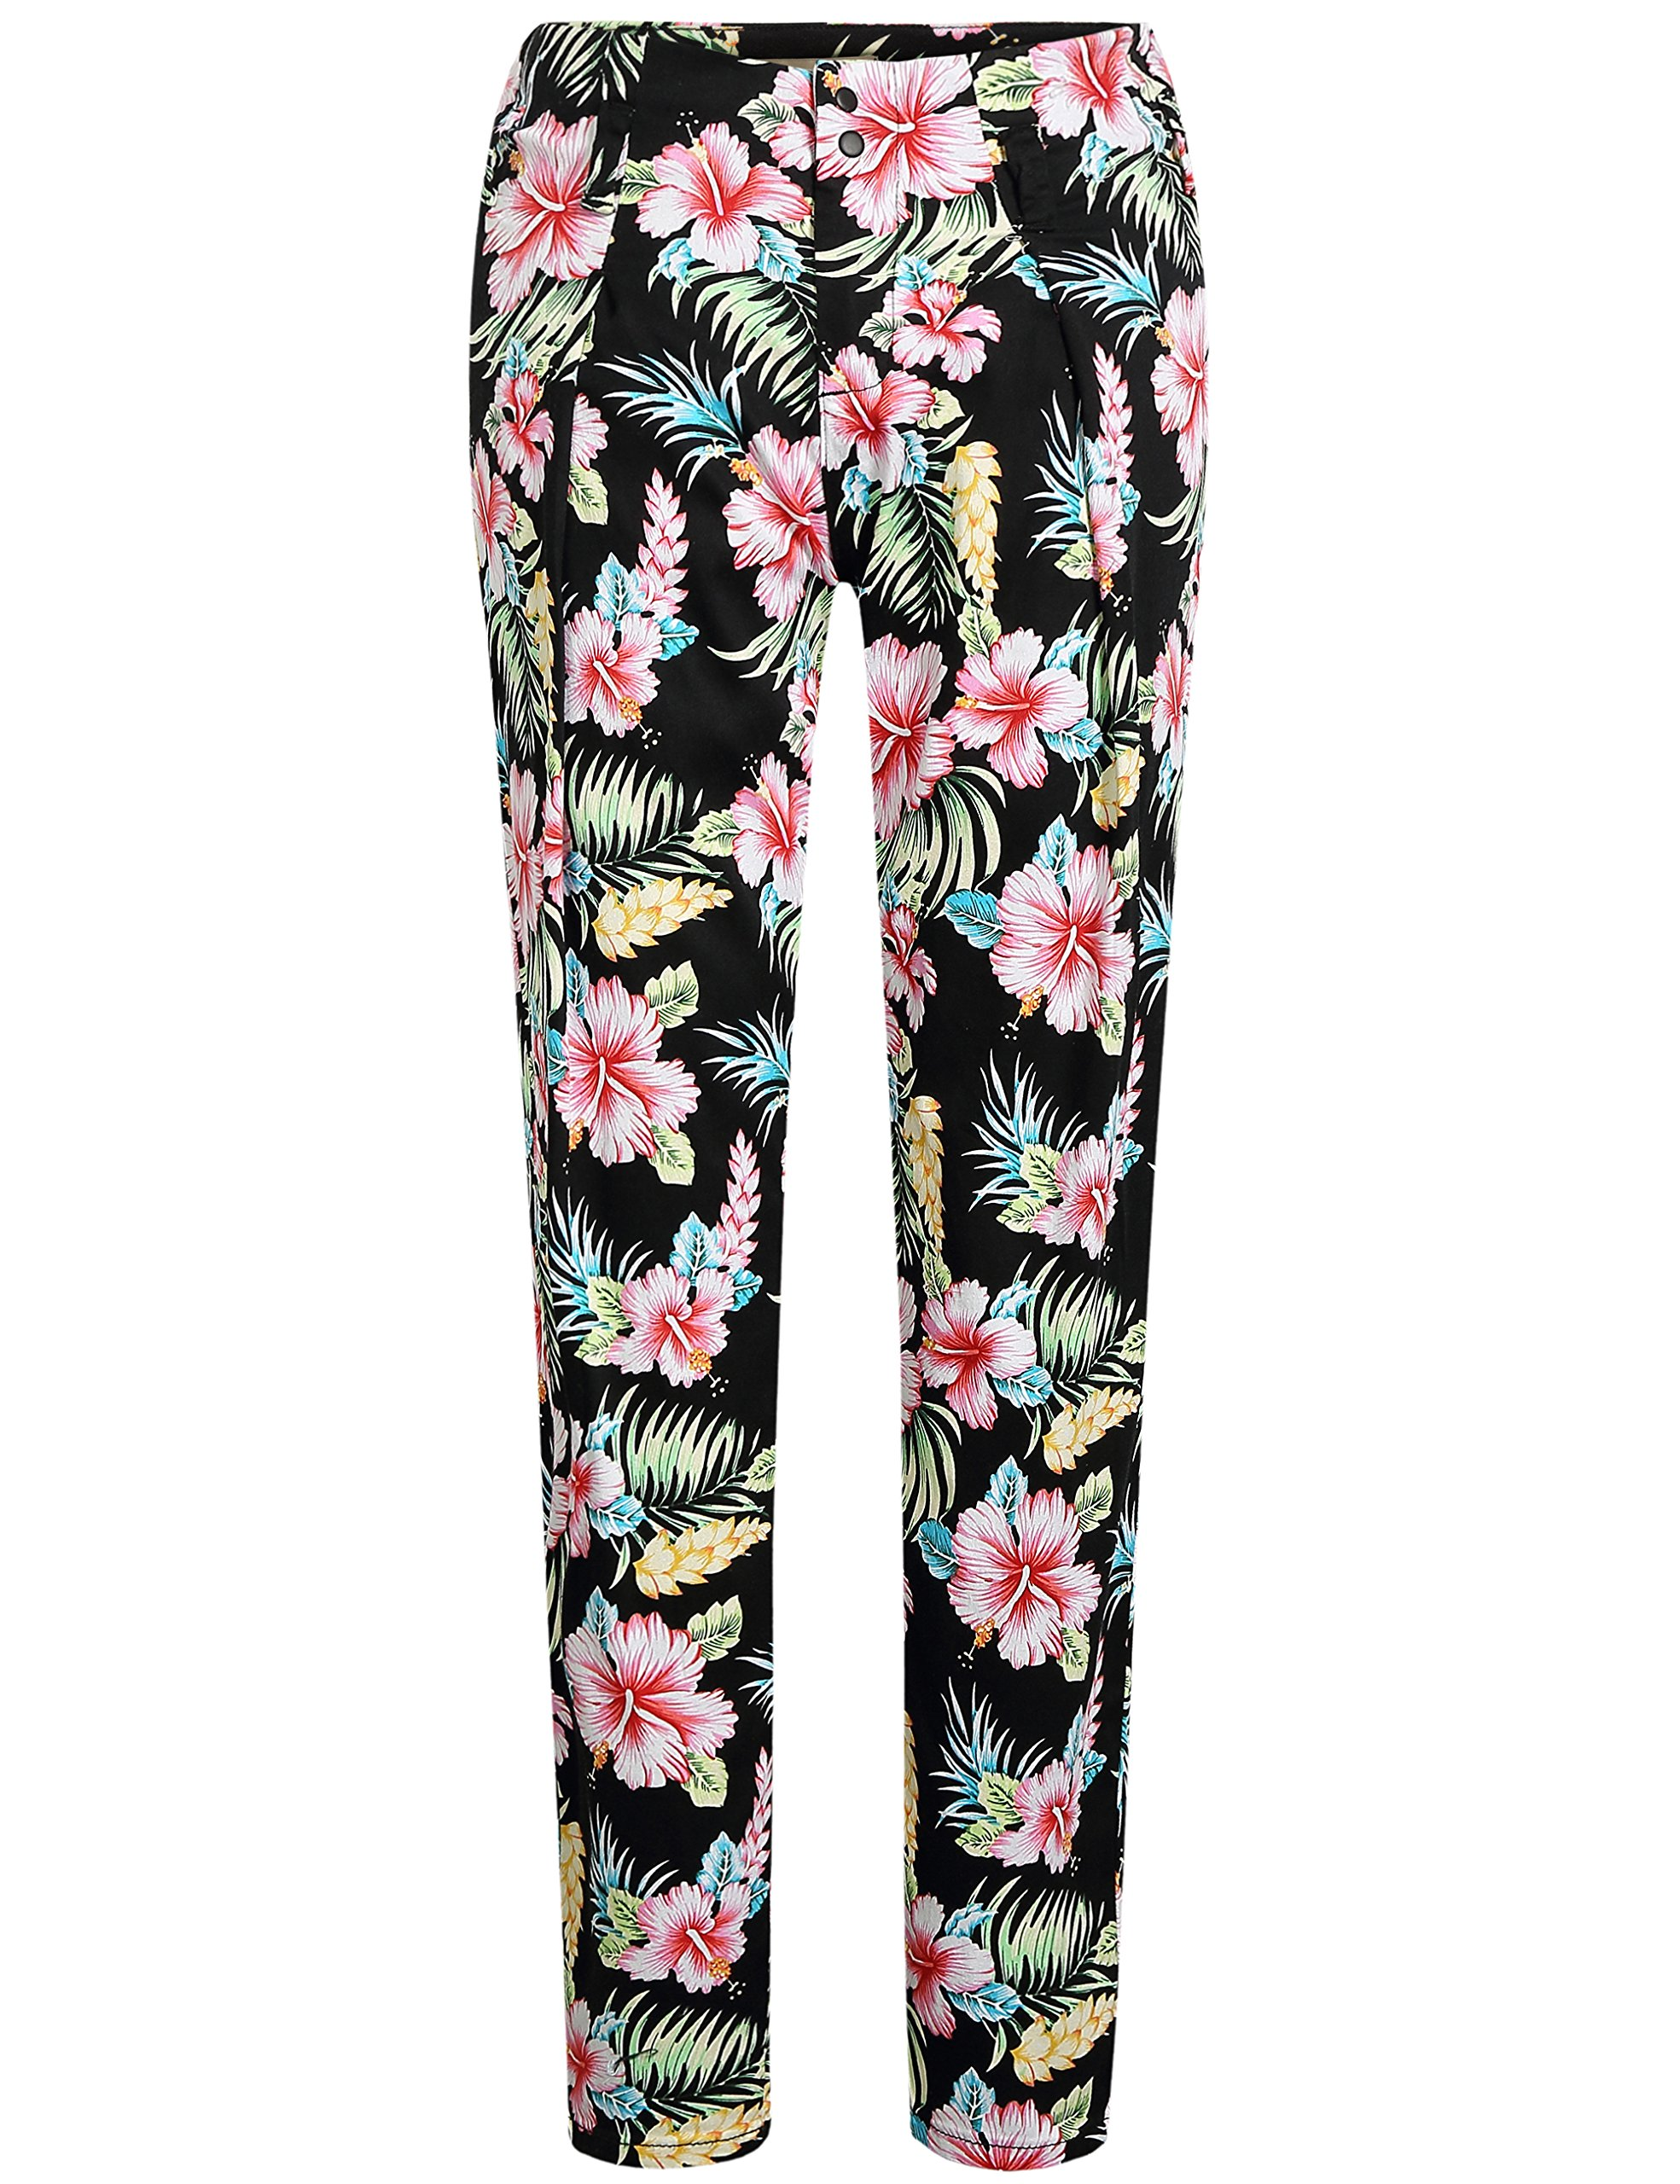 SSLR Women's Hibiscus High Rise Casual Slim Leg Hawaiian Pants (W30 x L30, Black)